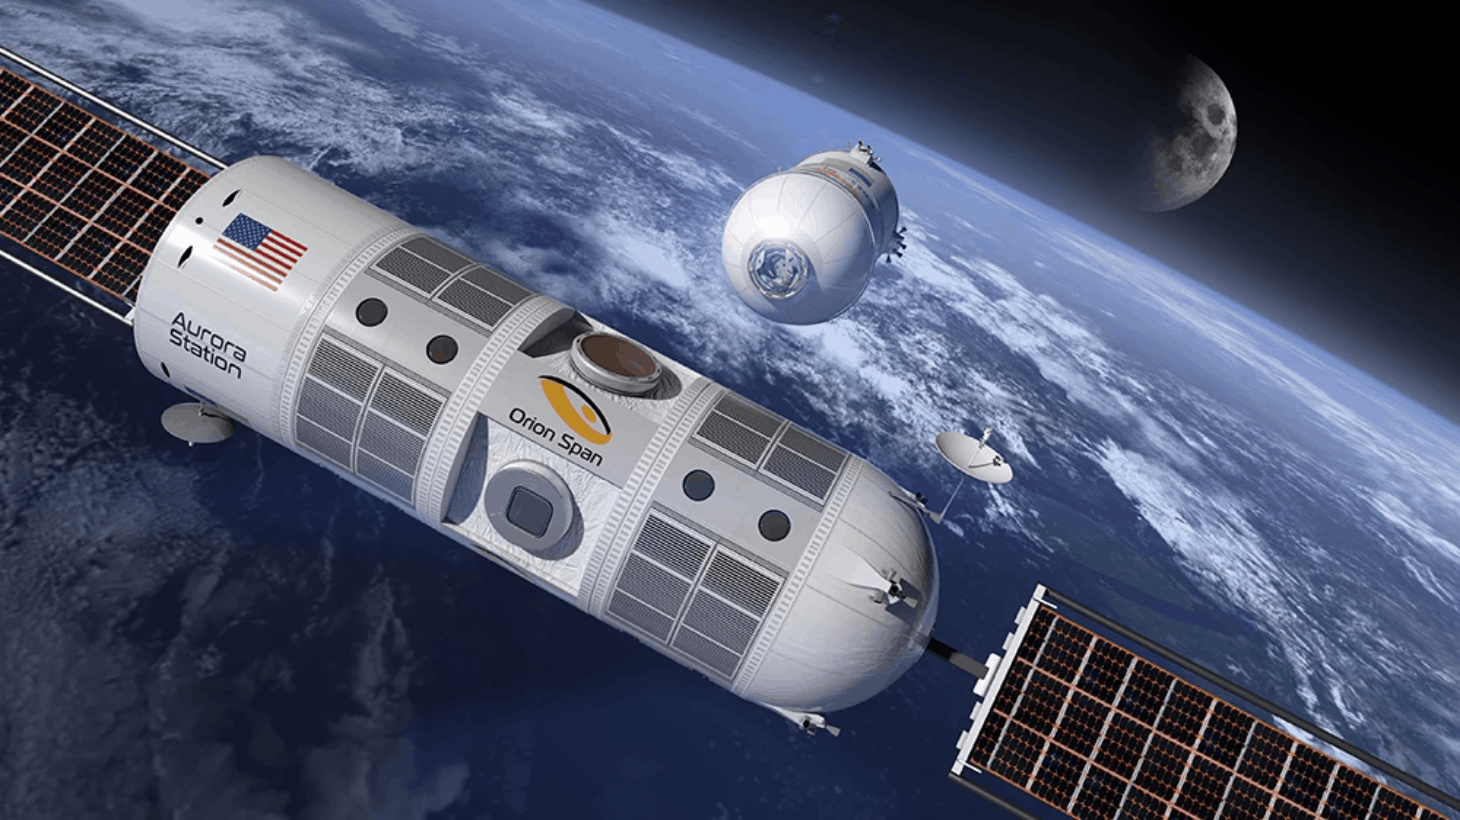 Space Tourism Companies - Orion Span - Aurora Space Station